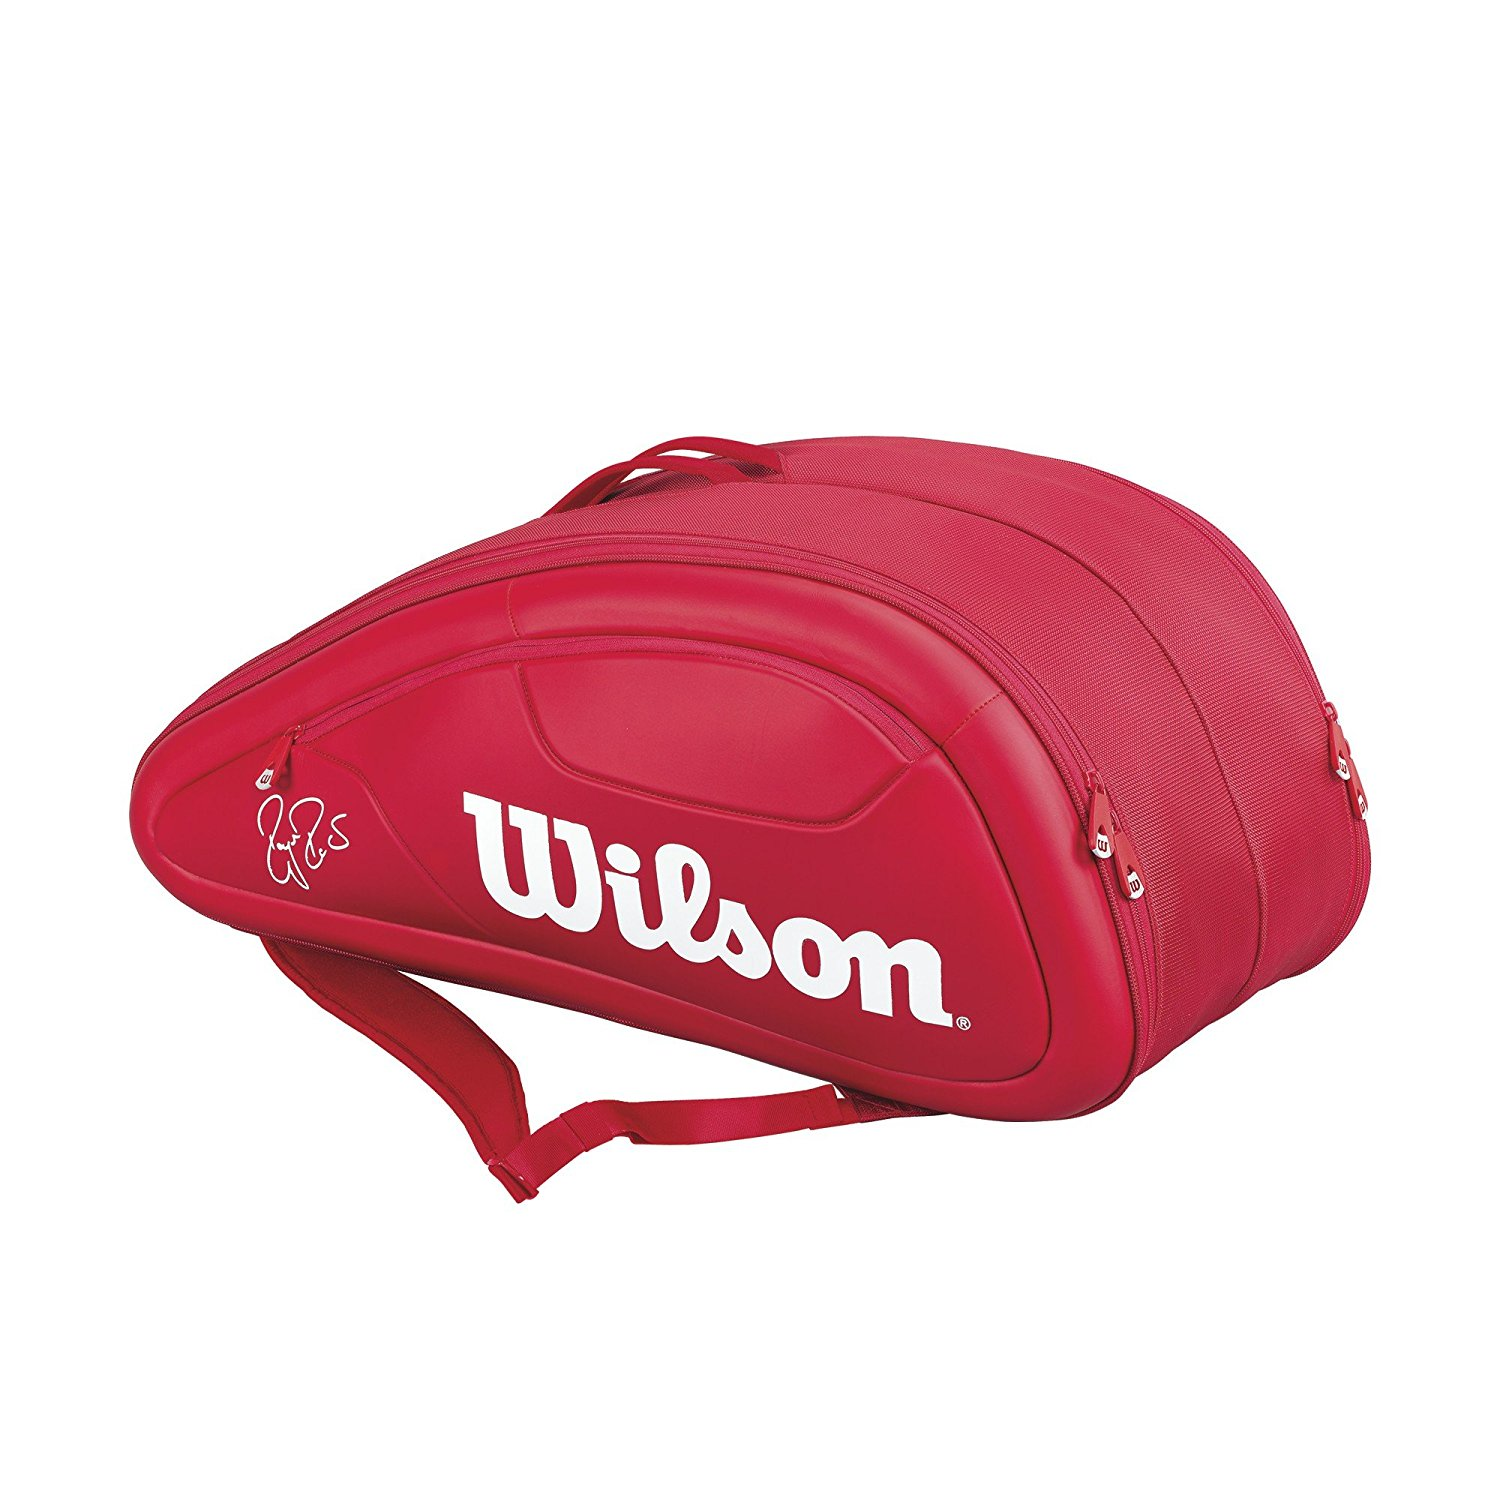 9f457cfde1fd6 Get Quotations · Wilson Federer DNA Collection Racket Bag (Holds up to 12)